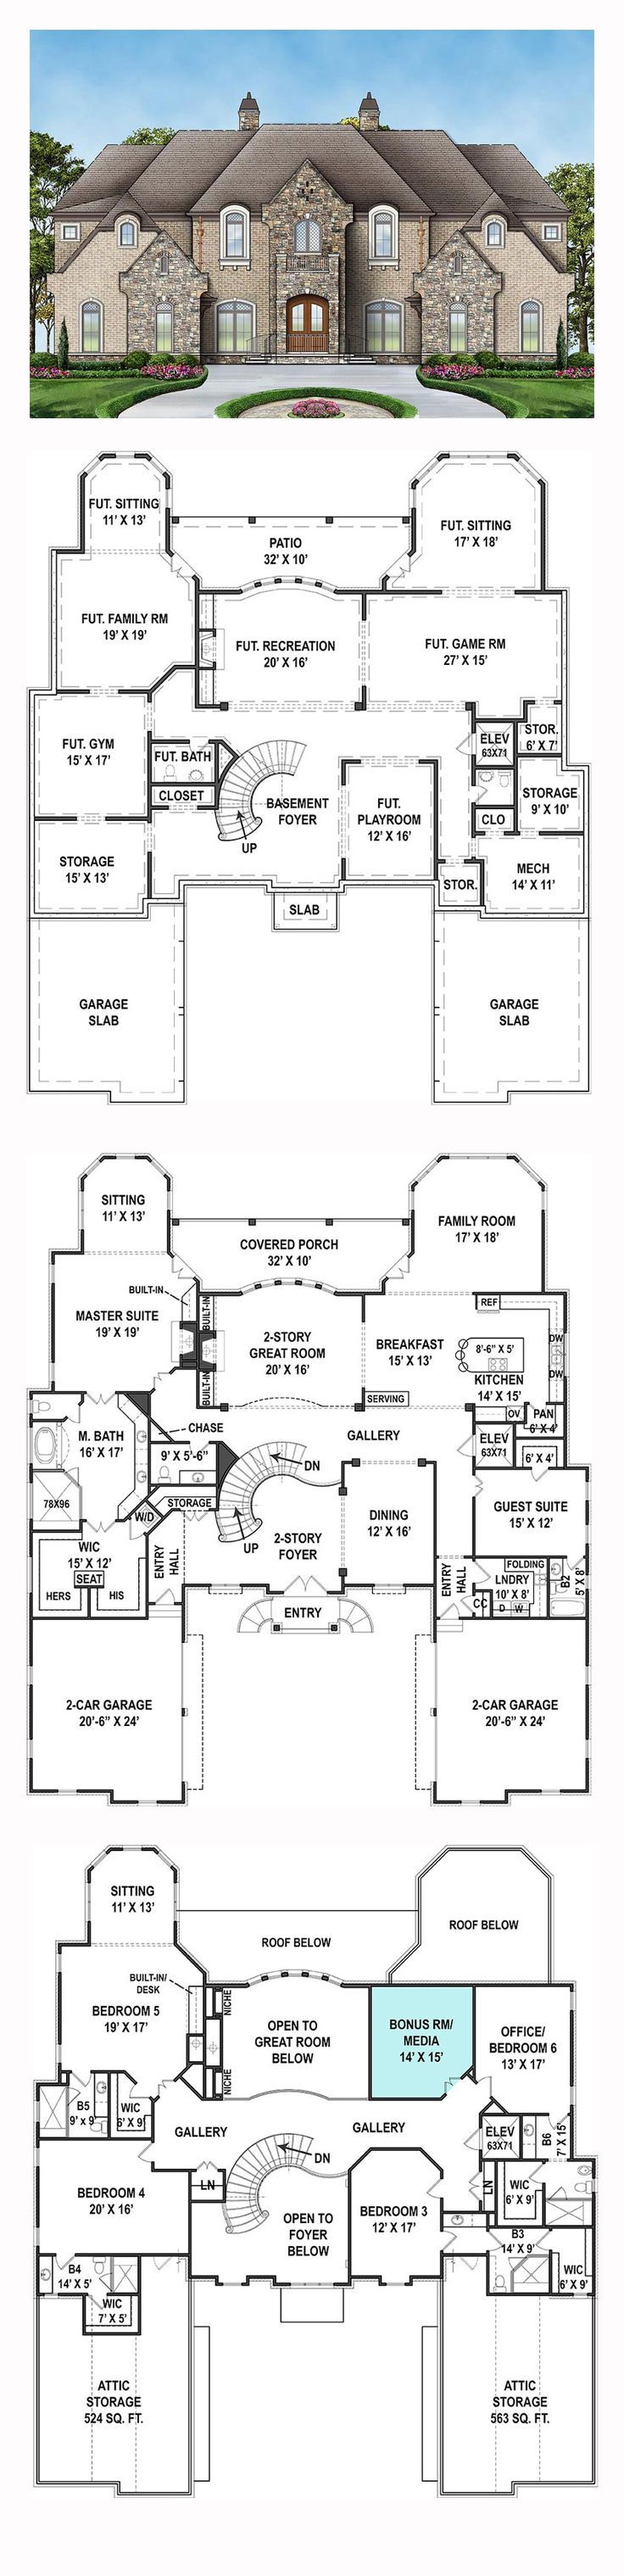 Cool New House Plan 72171 Part 40